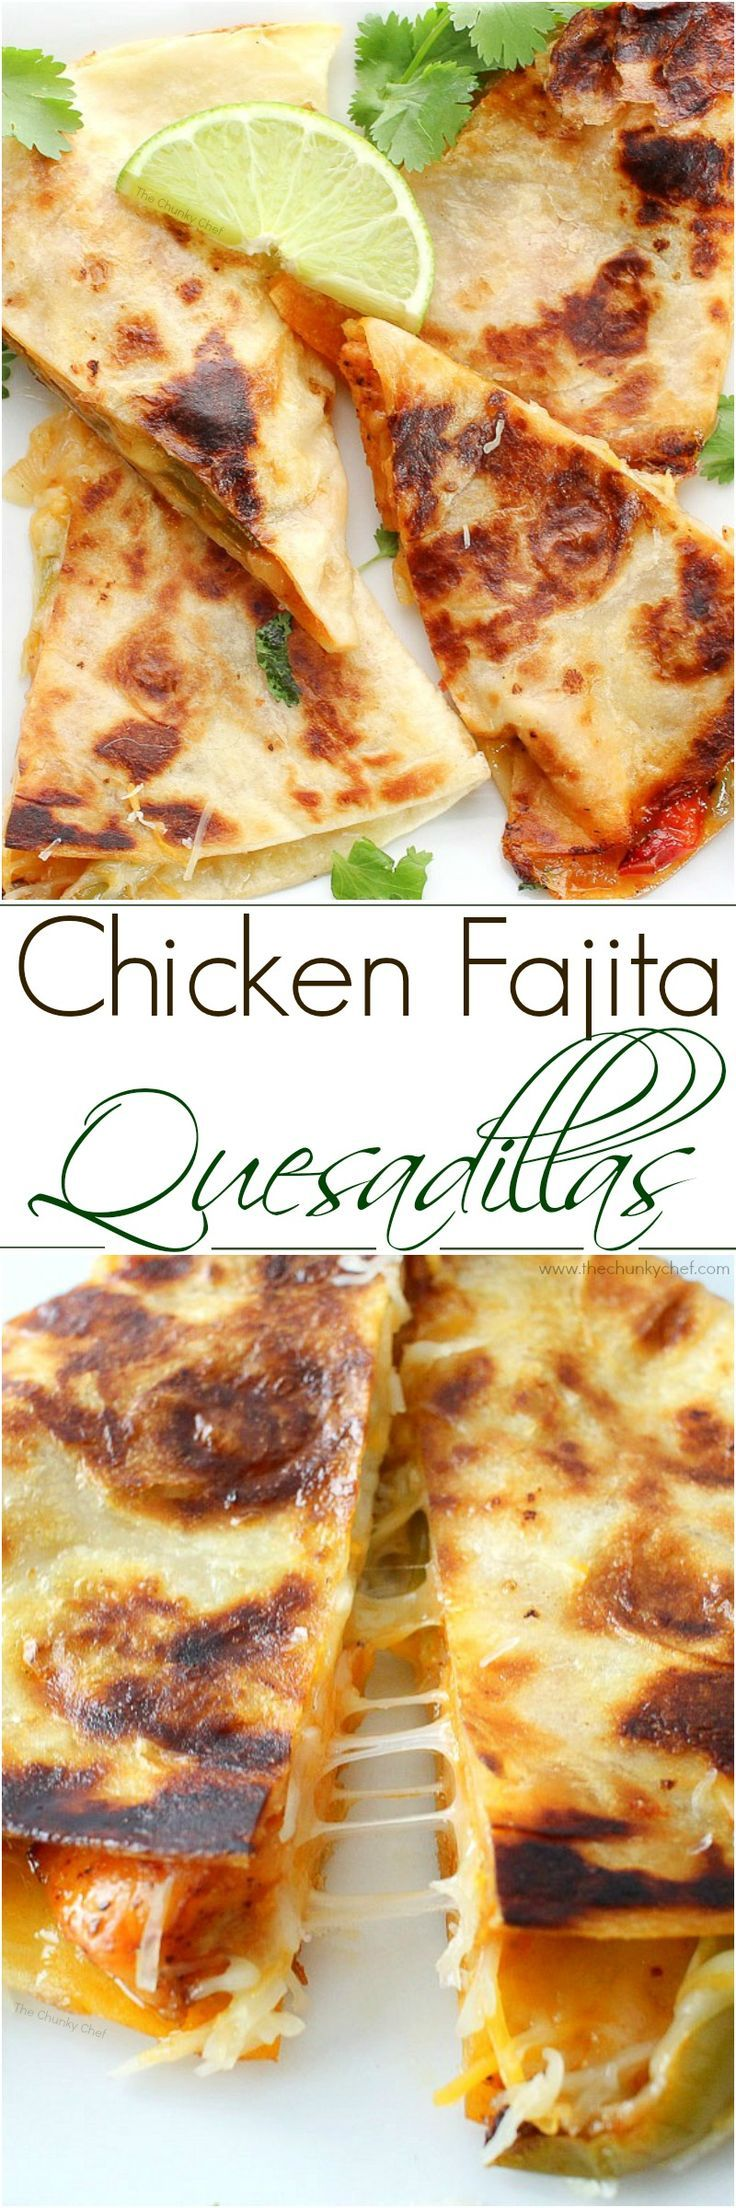 Do you love chicken fajitas?  Do you love quesadillas?  Combine the two and you have one amazing quesadilla you'll want to make over and over!